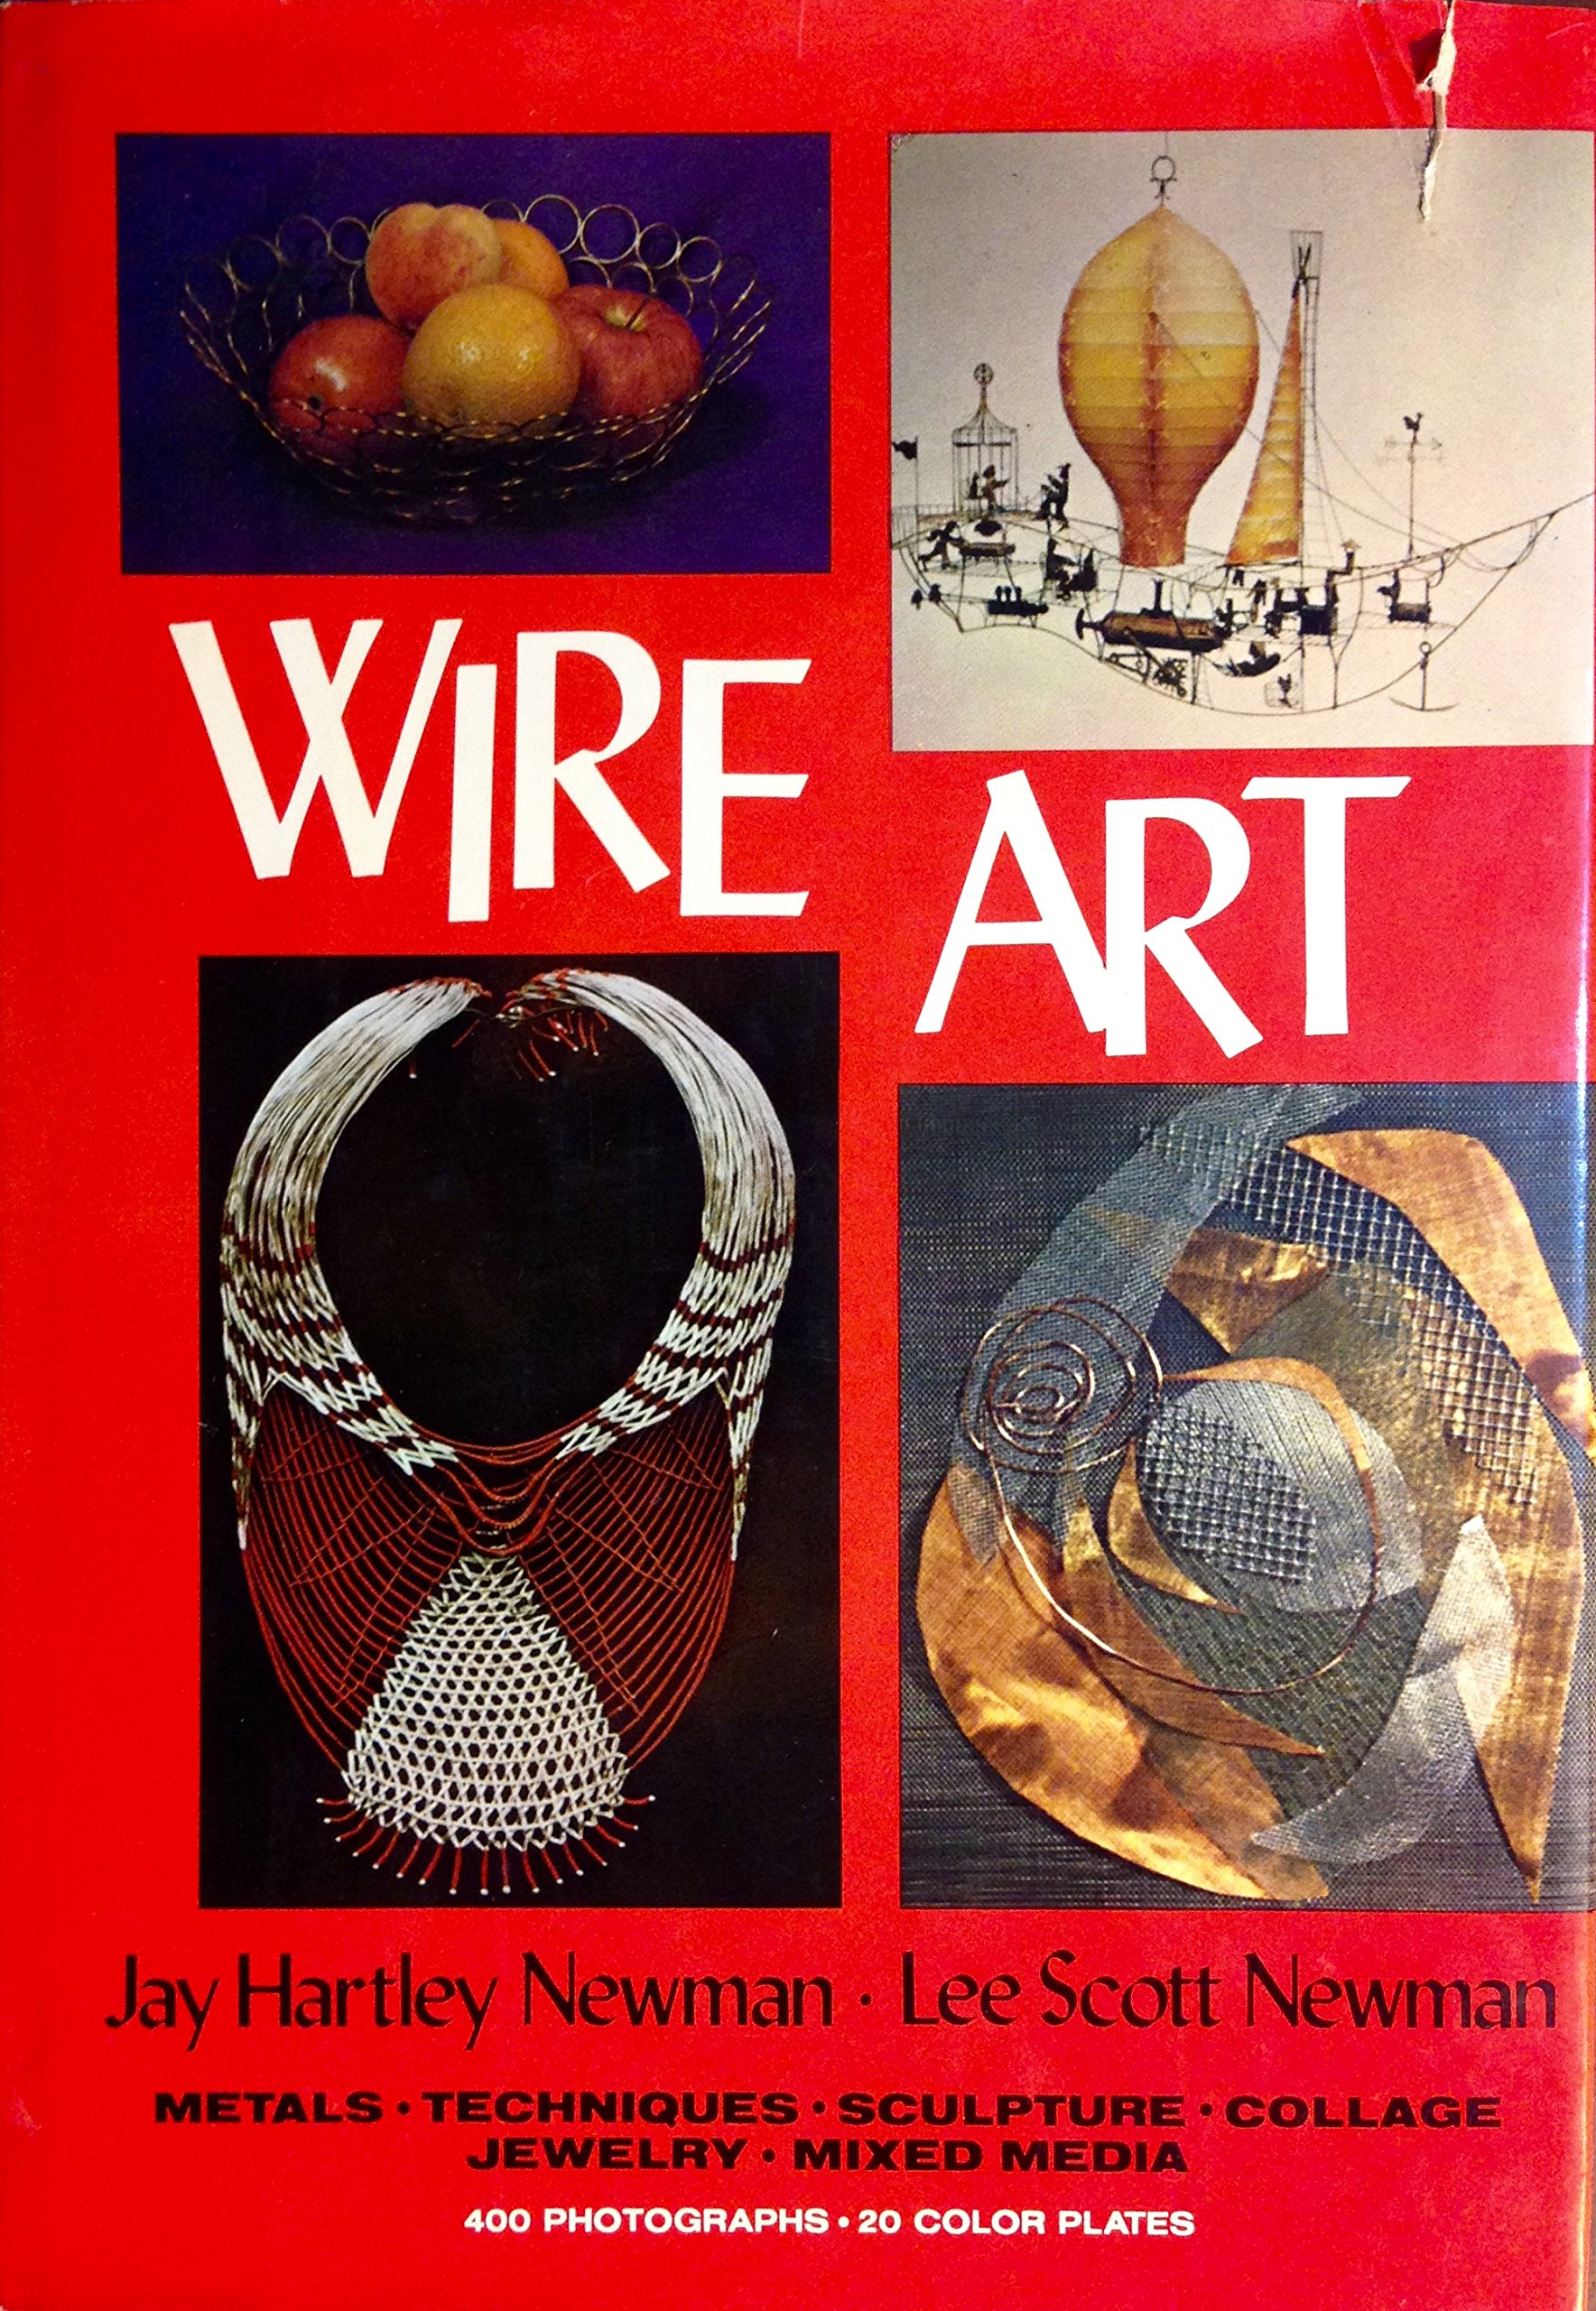 Wire Art: Metals, Techniques, Sculpture, Collage, Jewelry, Mixed Media: Jay  Hartley Newman, Lee Scott Newman: 9780517516225: Amazon.com: Books